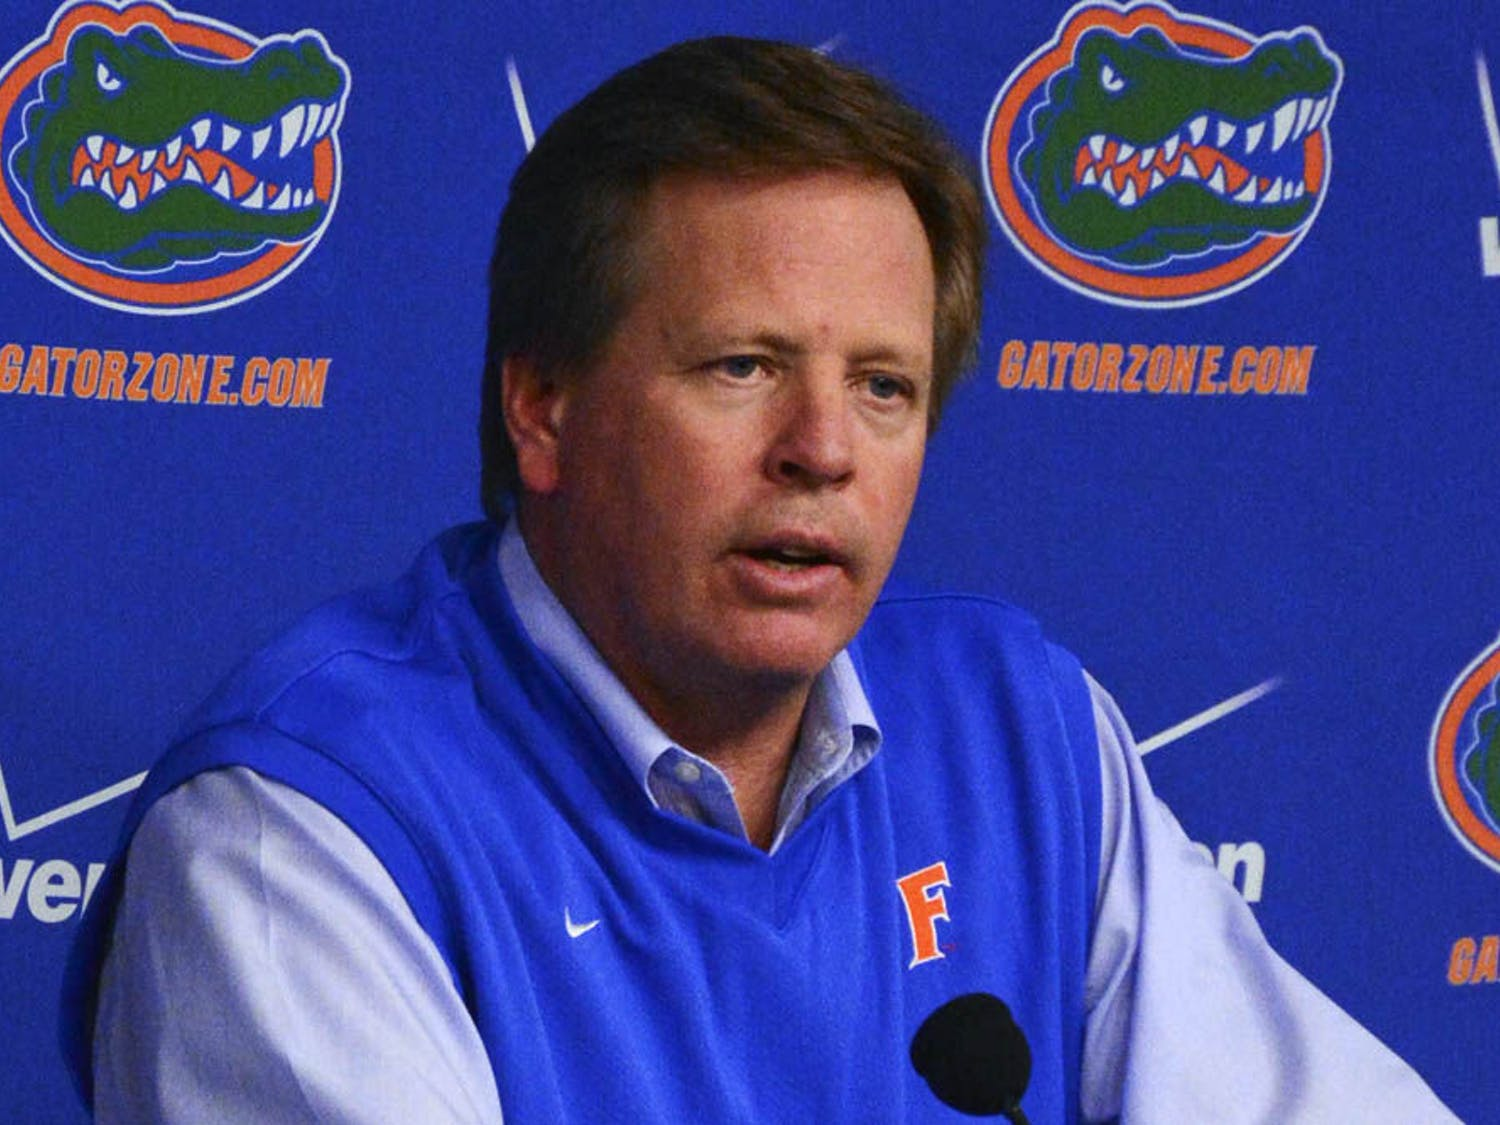 Florida coach Jim McElwain speaks about UF's 2015 recruiting class during a press conference on Feb. 4 in Ben Hill Griffin Stadium.